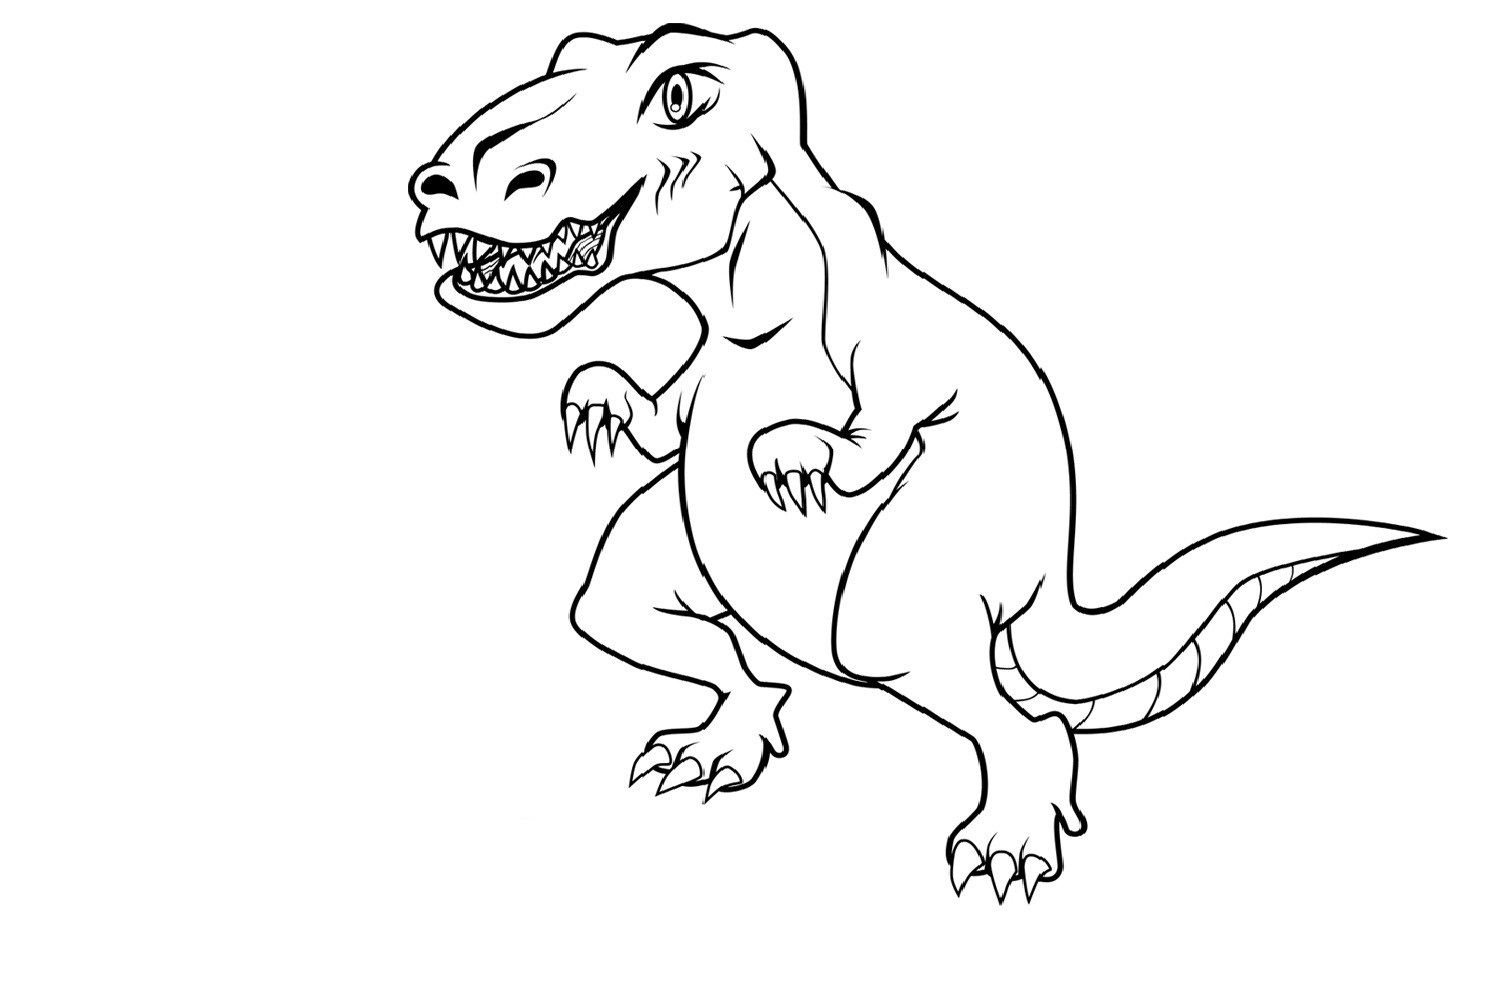 free printable dinosaur coloring pages - Kids Free Printable Coloring Pages